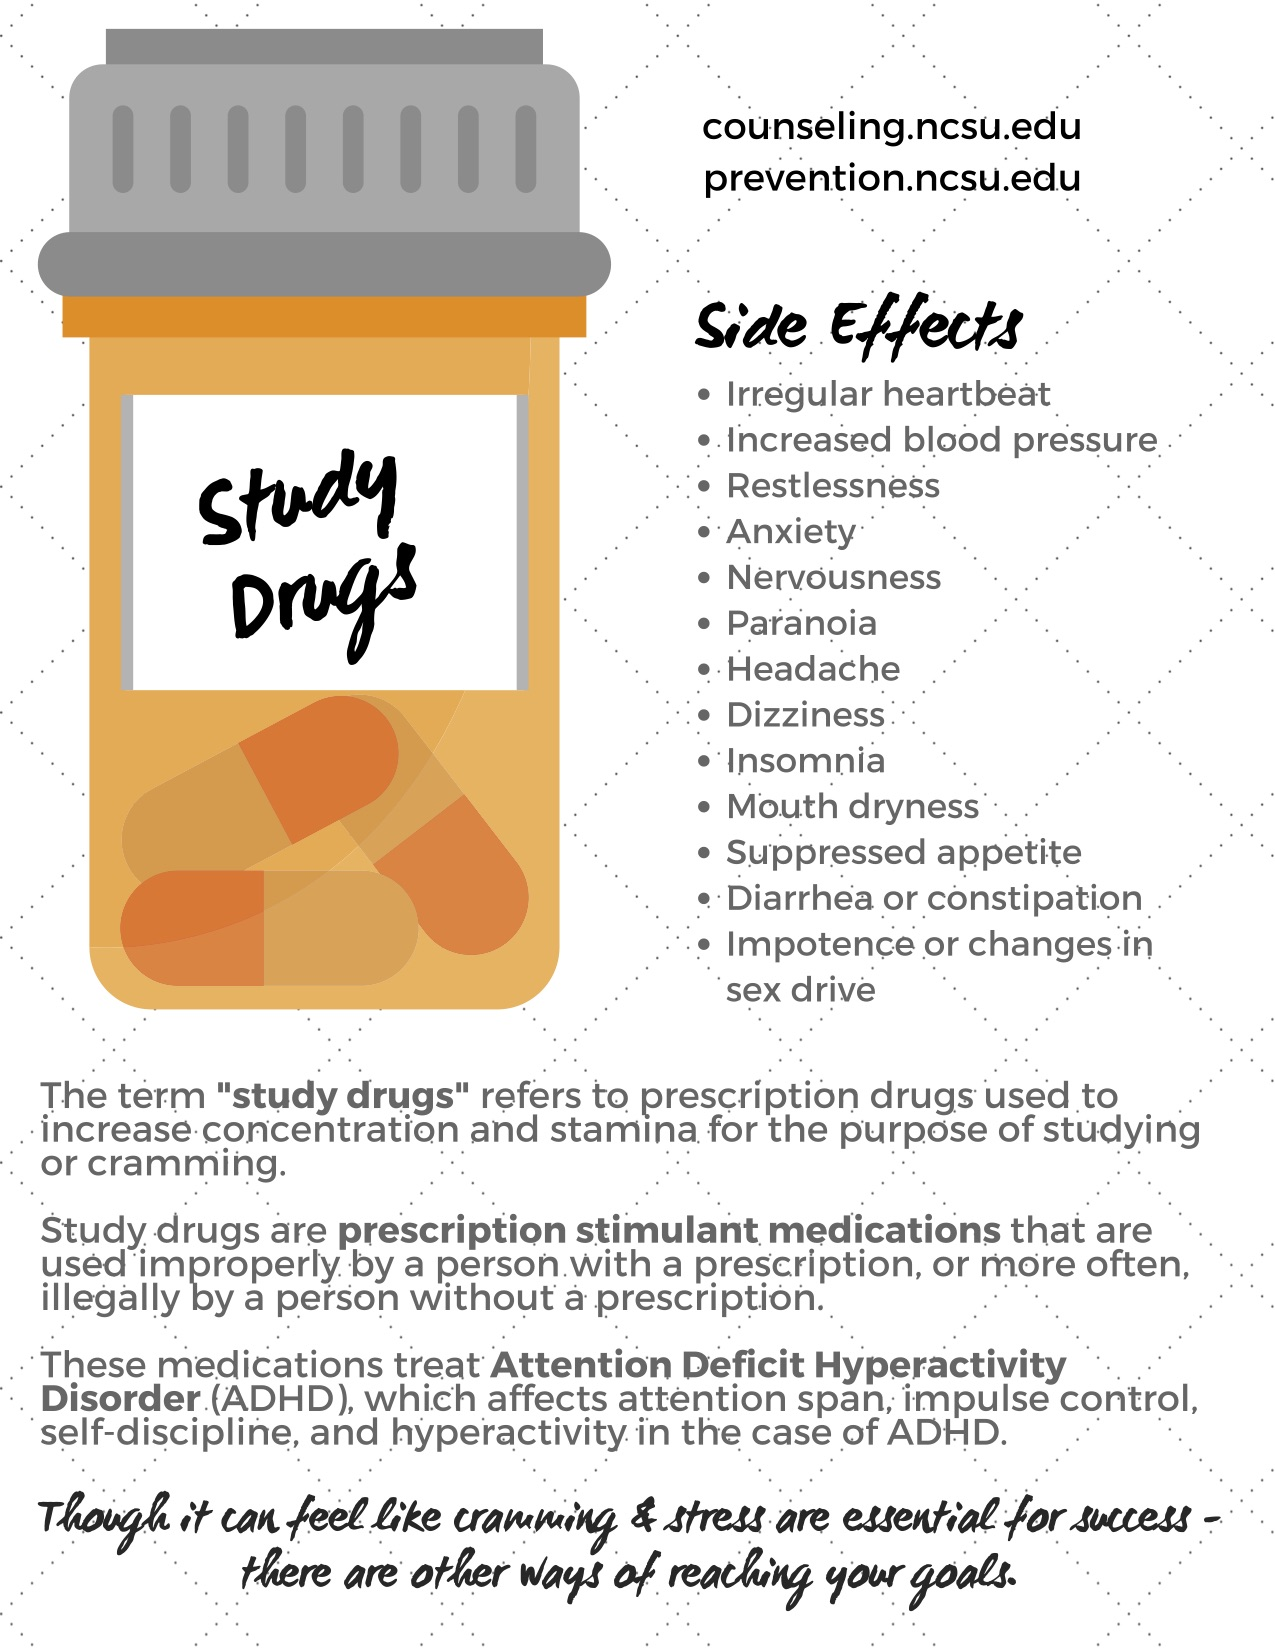 infographic about study drugs